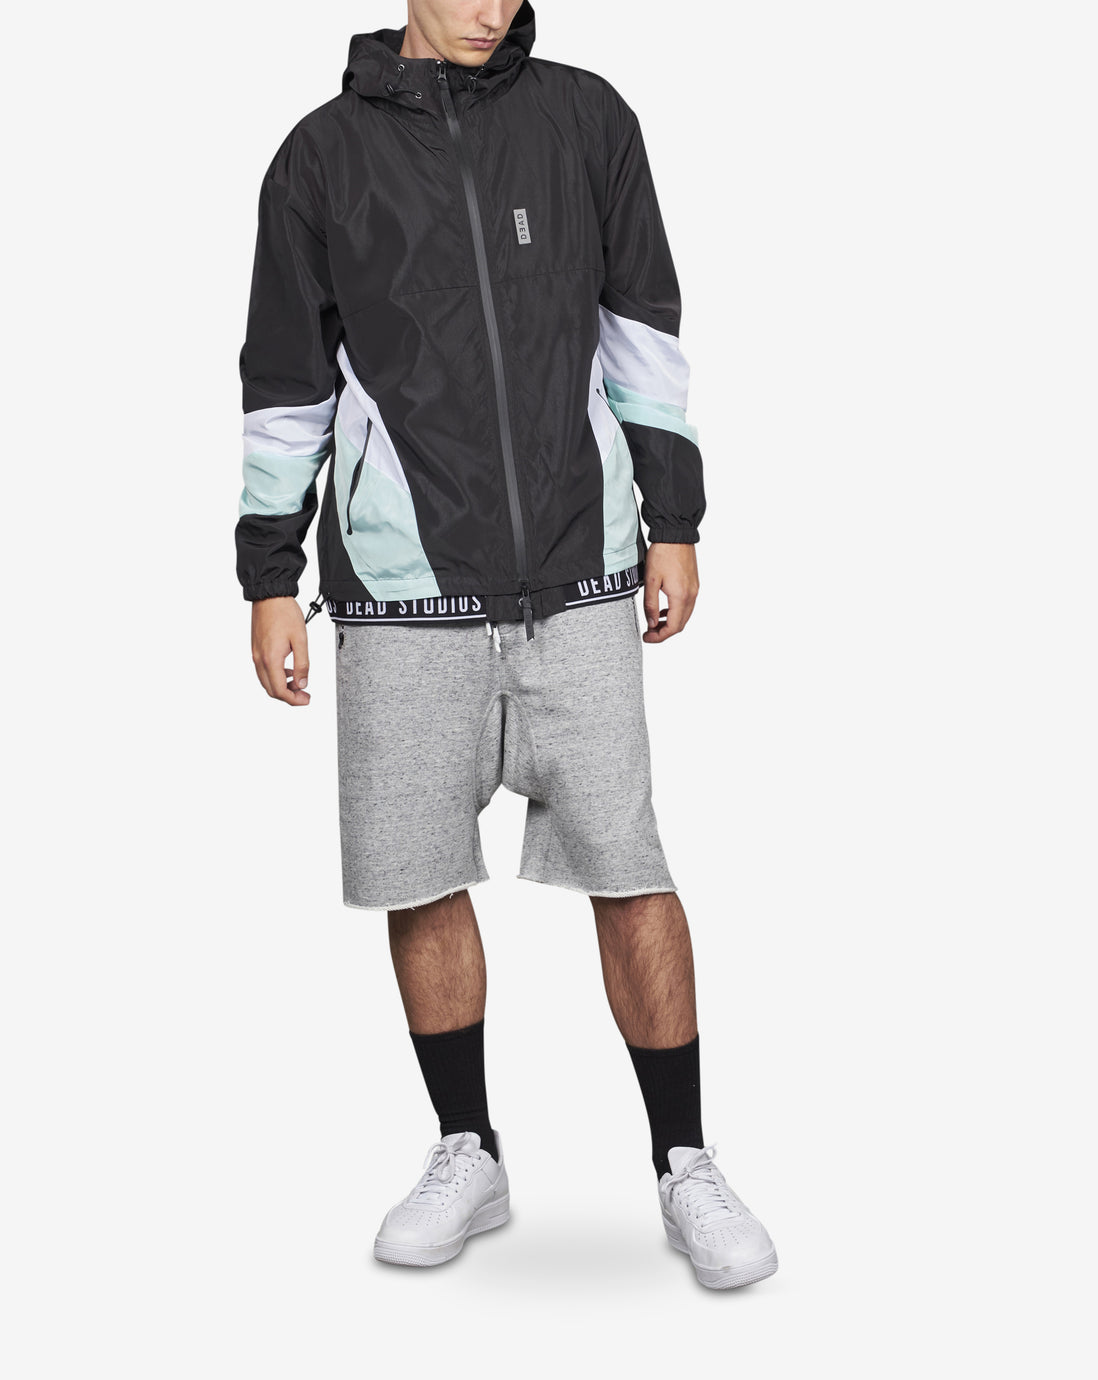 ENVY RUNNER JACKET